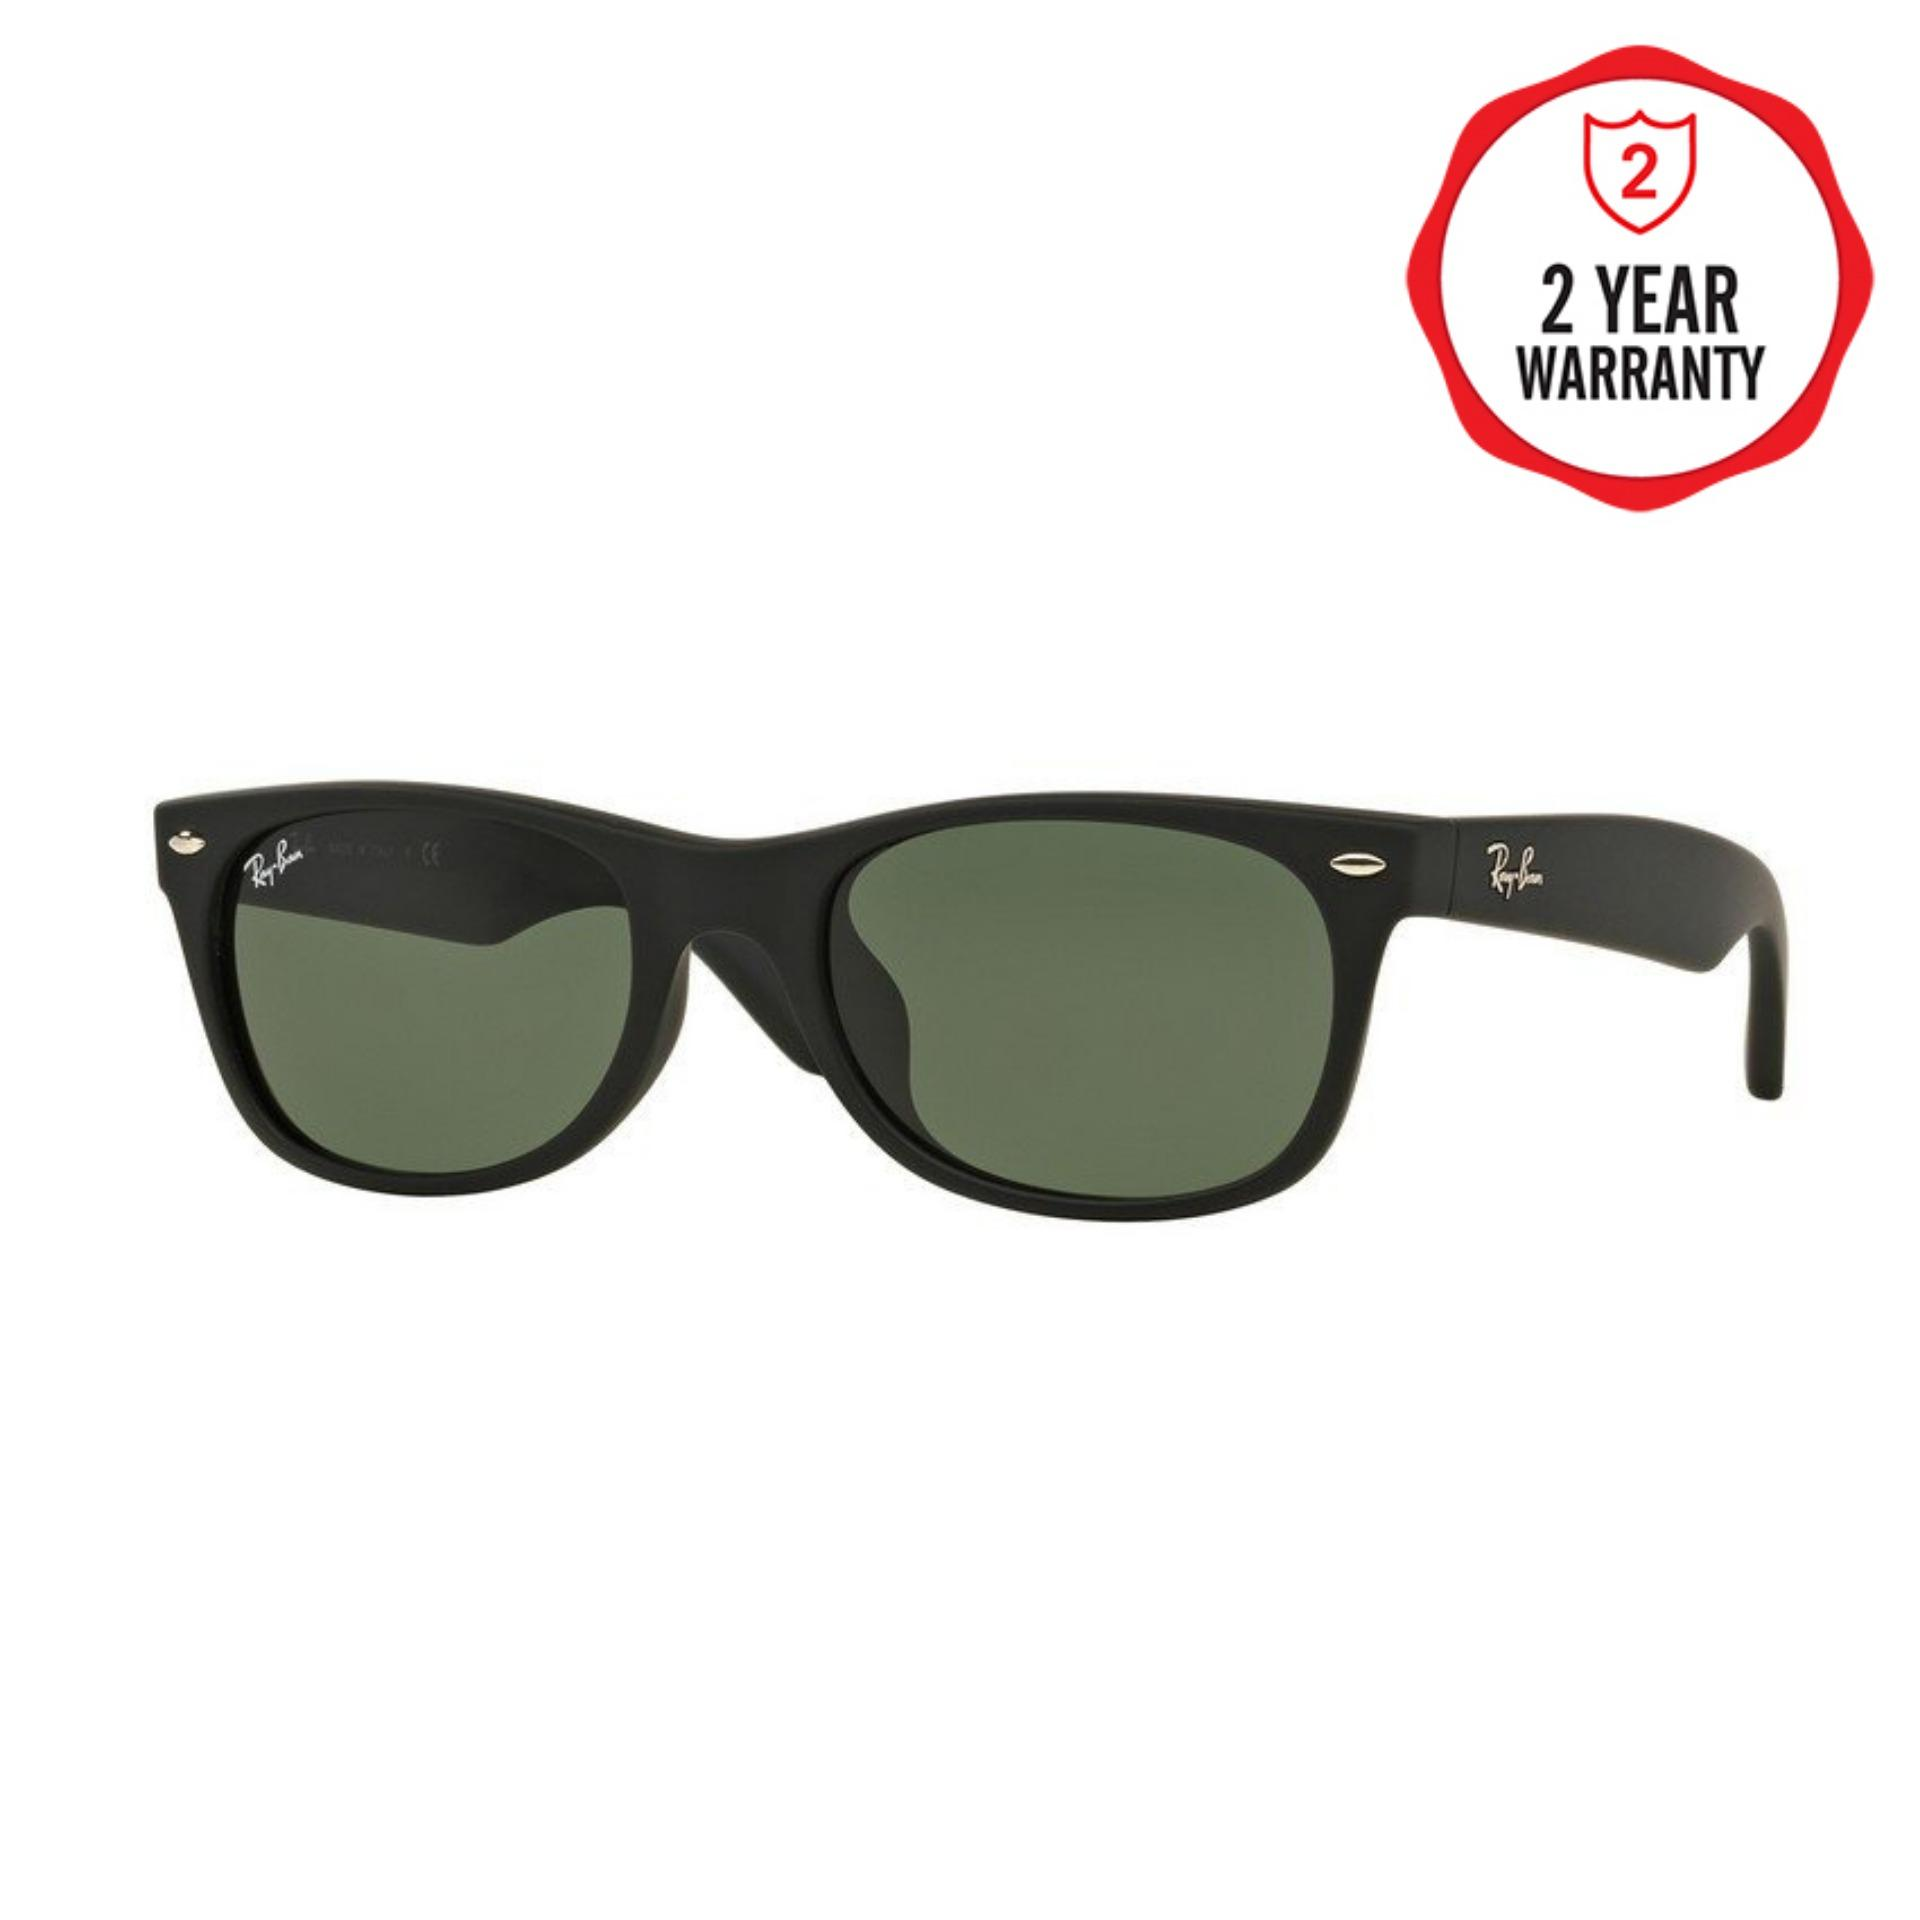 Ray Ban Philippines  Ray Ban price list - Shades   Sunglasses for ... 687248a178de